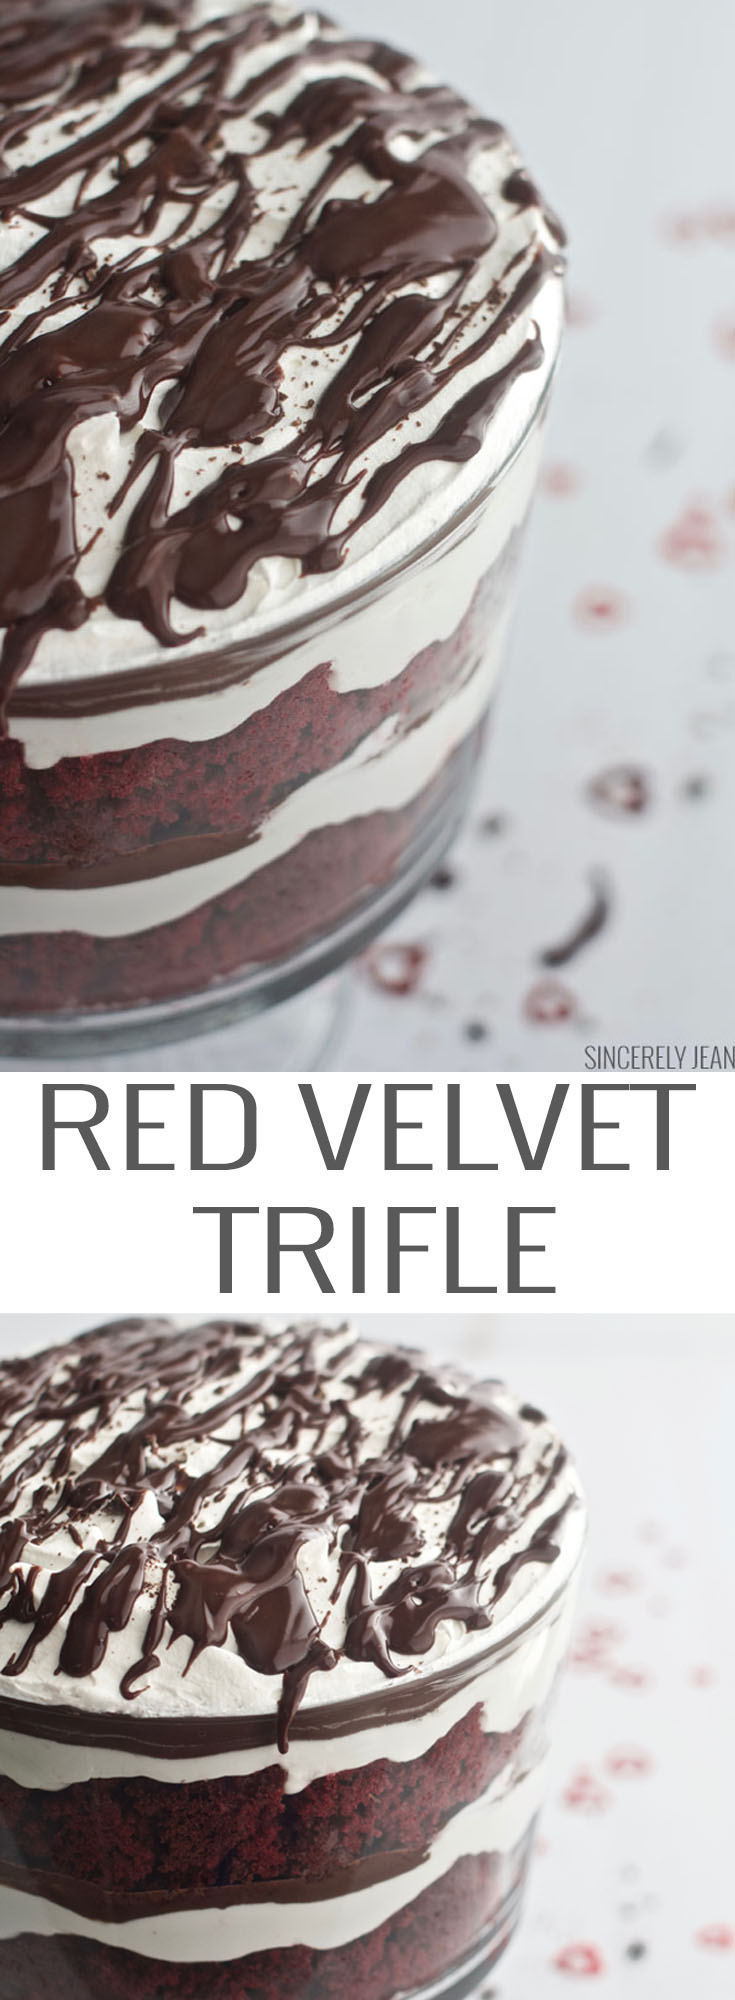 Red Velvet Trifle, valentines day, christmas, dessert, cake, trifle, chocolate, food,